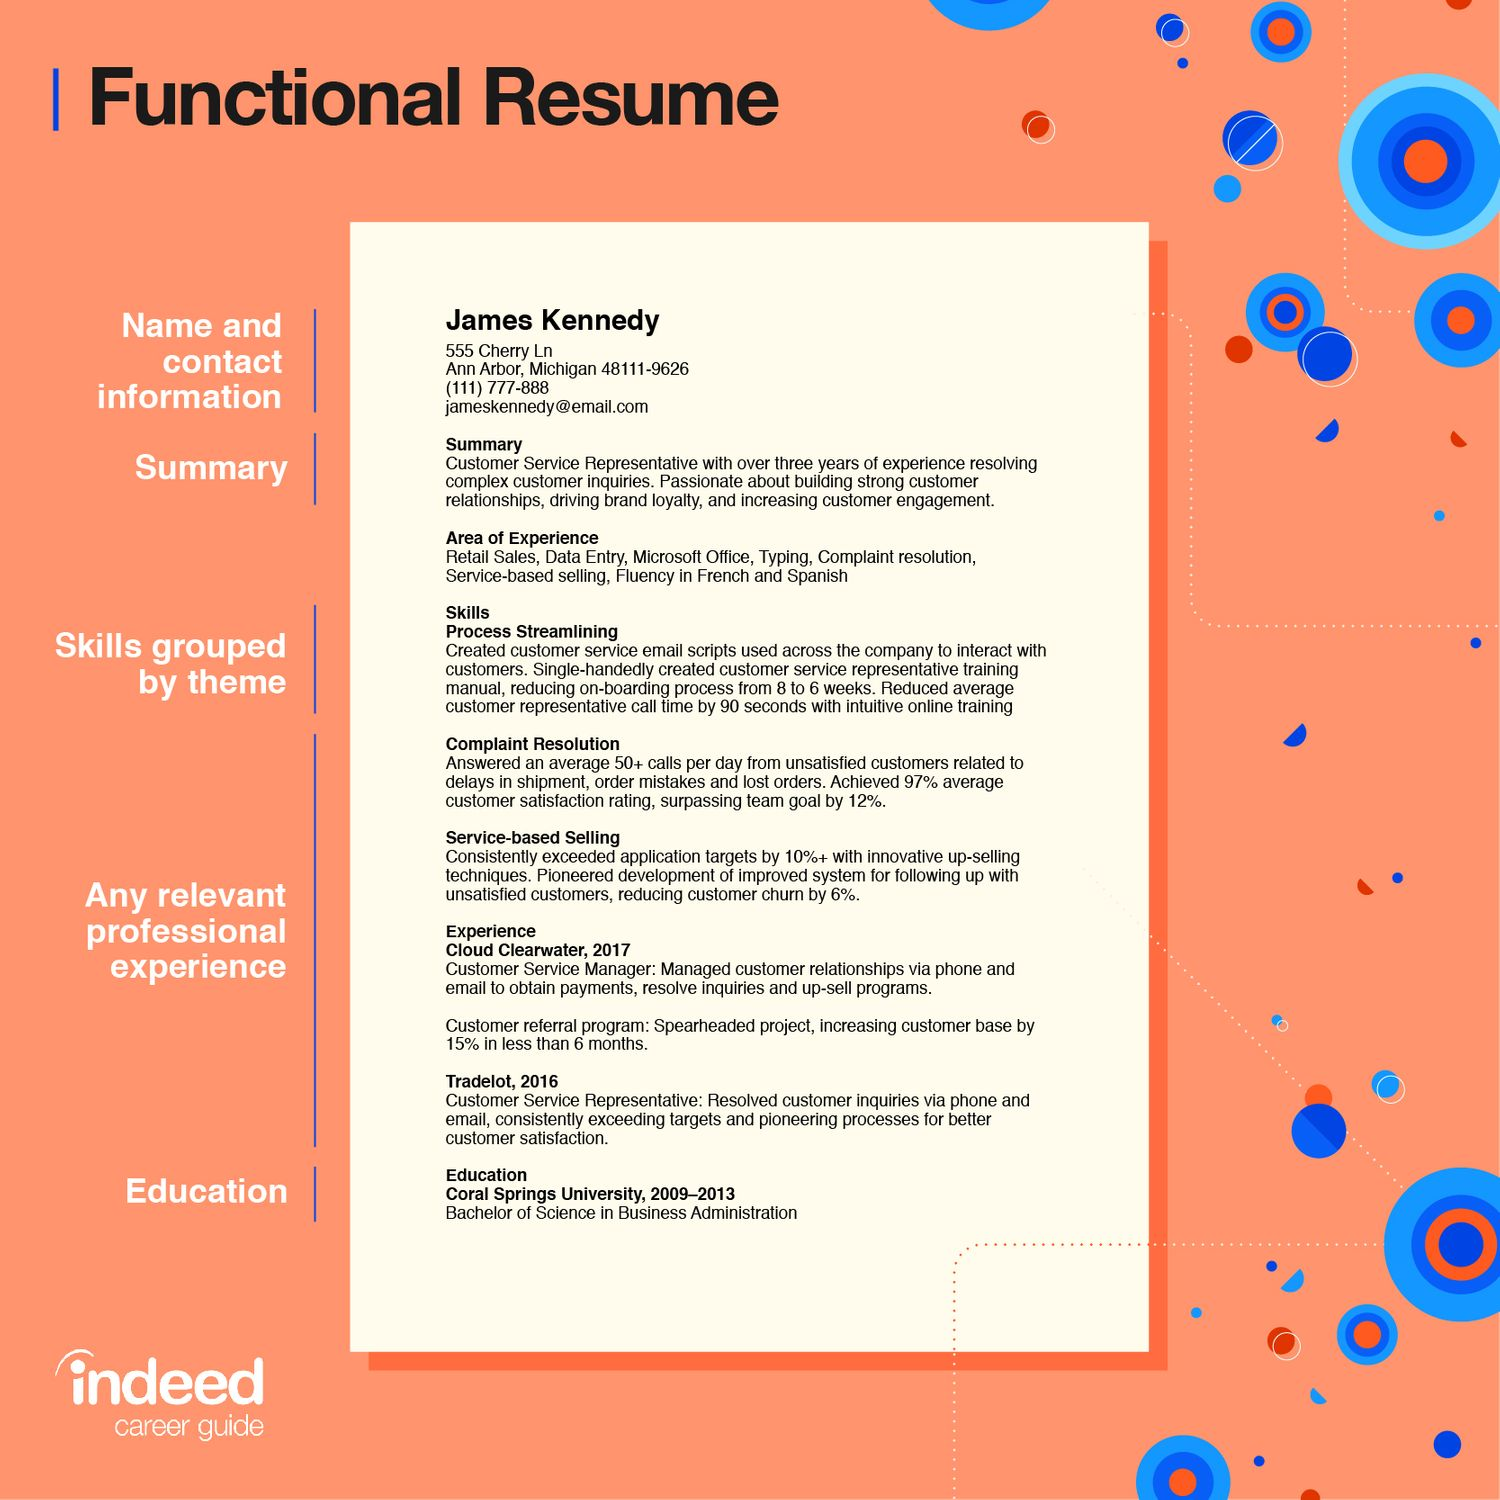 to make resume for your first job indeed time worker resized executive services linkedin Resume First Time Worker Resume